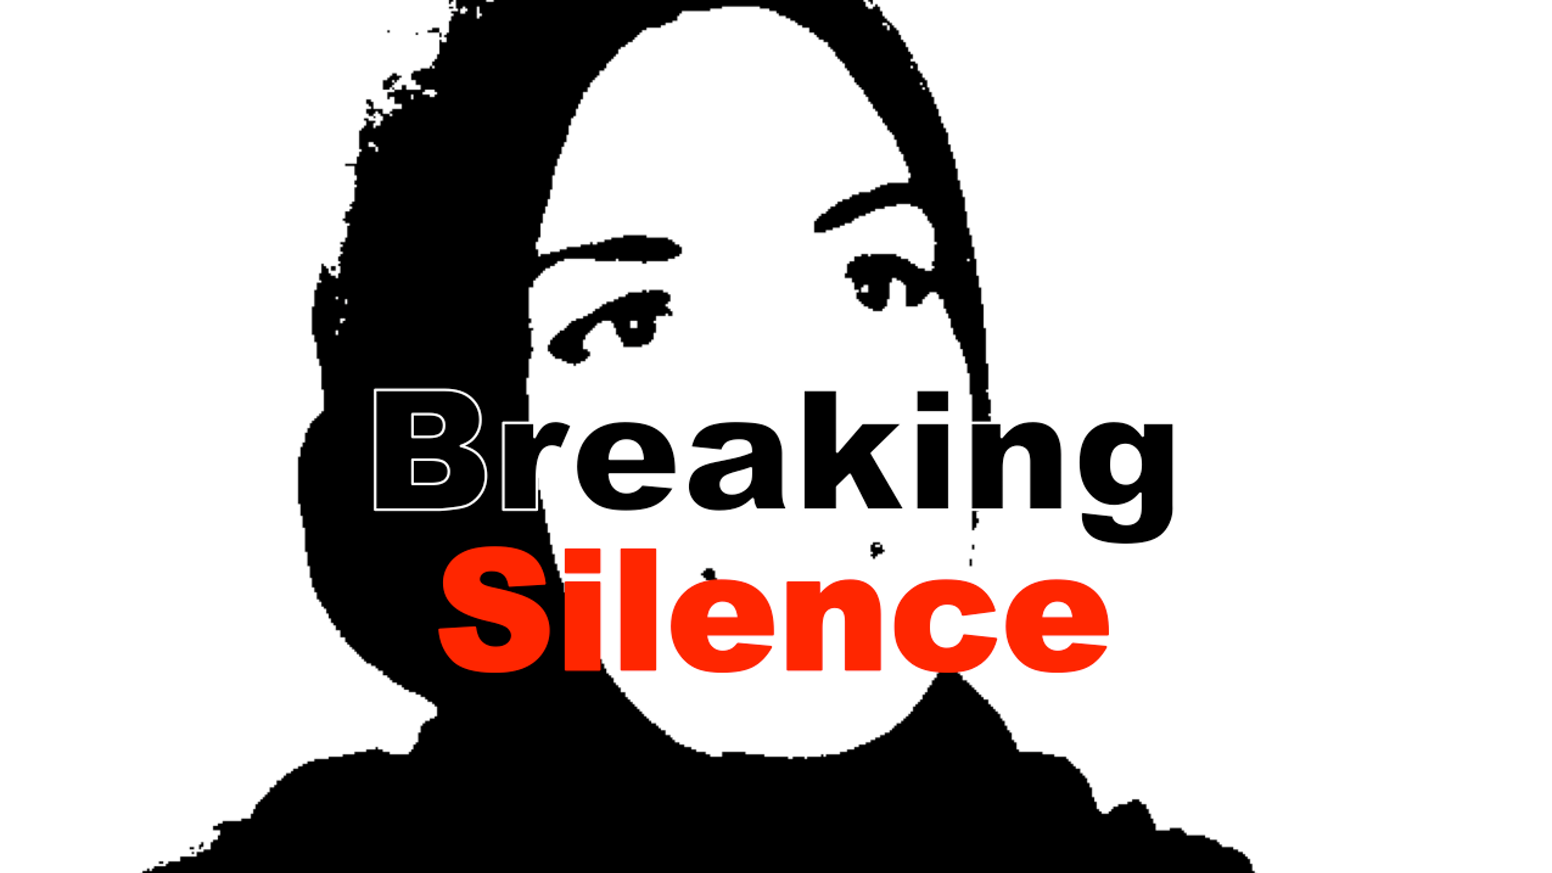 'Breaking Silence' is the first of its kind in documenting American Muslim women's stories about their sexual assault experiences.